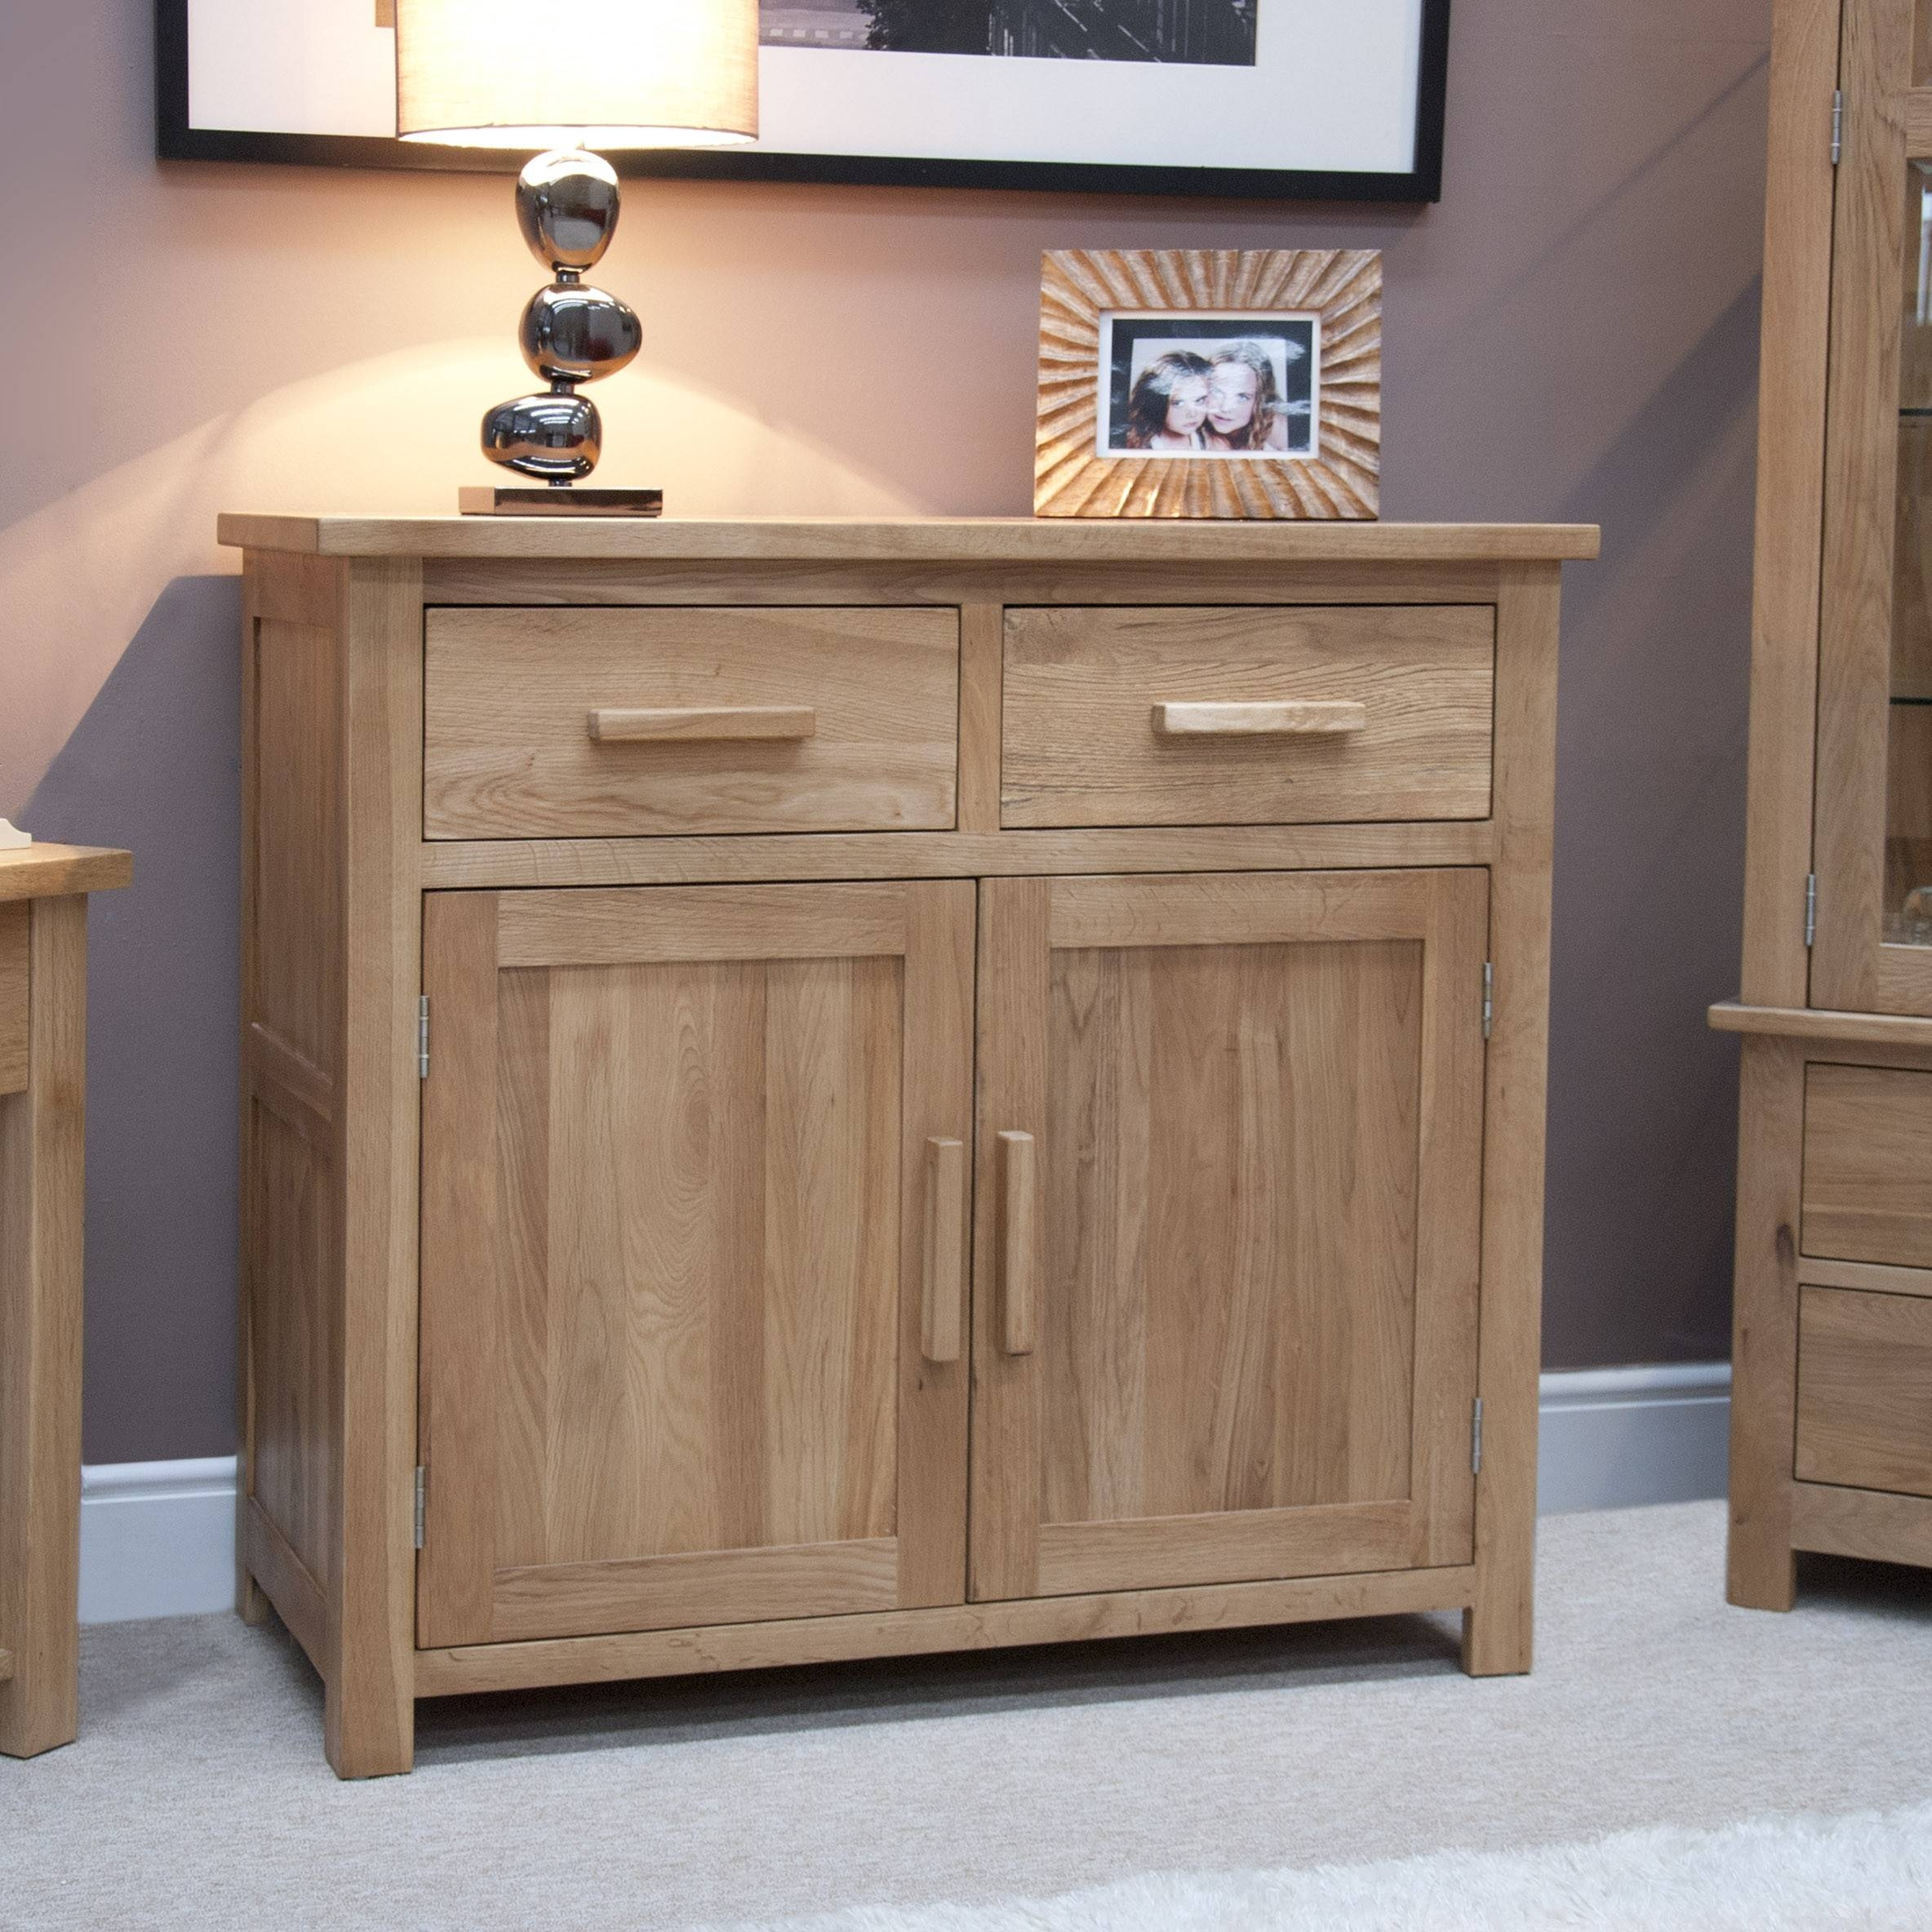 Opus Oak Furniture Small Sideboard | Furniture4Yourhome in Oak Sideboards for Sale (Image 12 of 30)